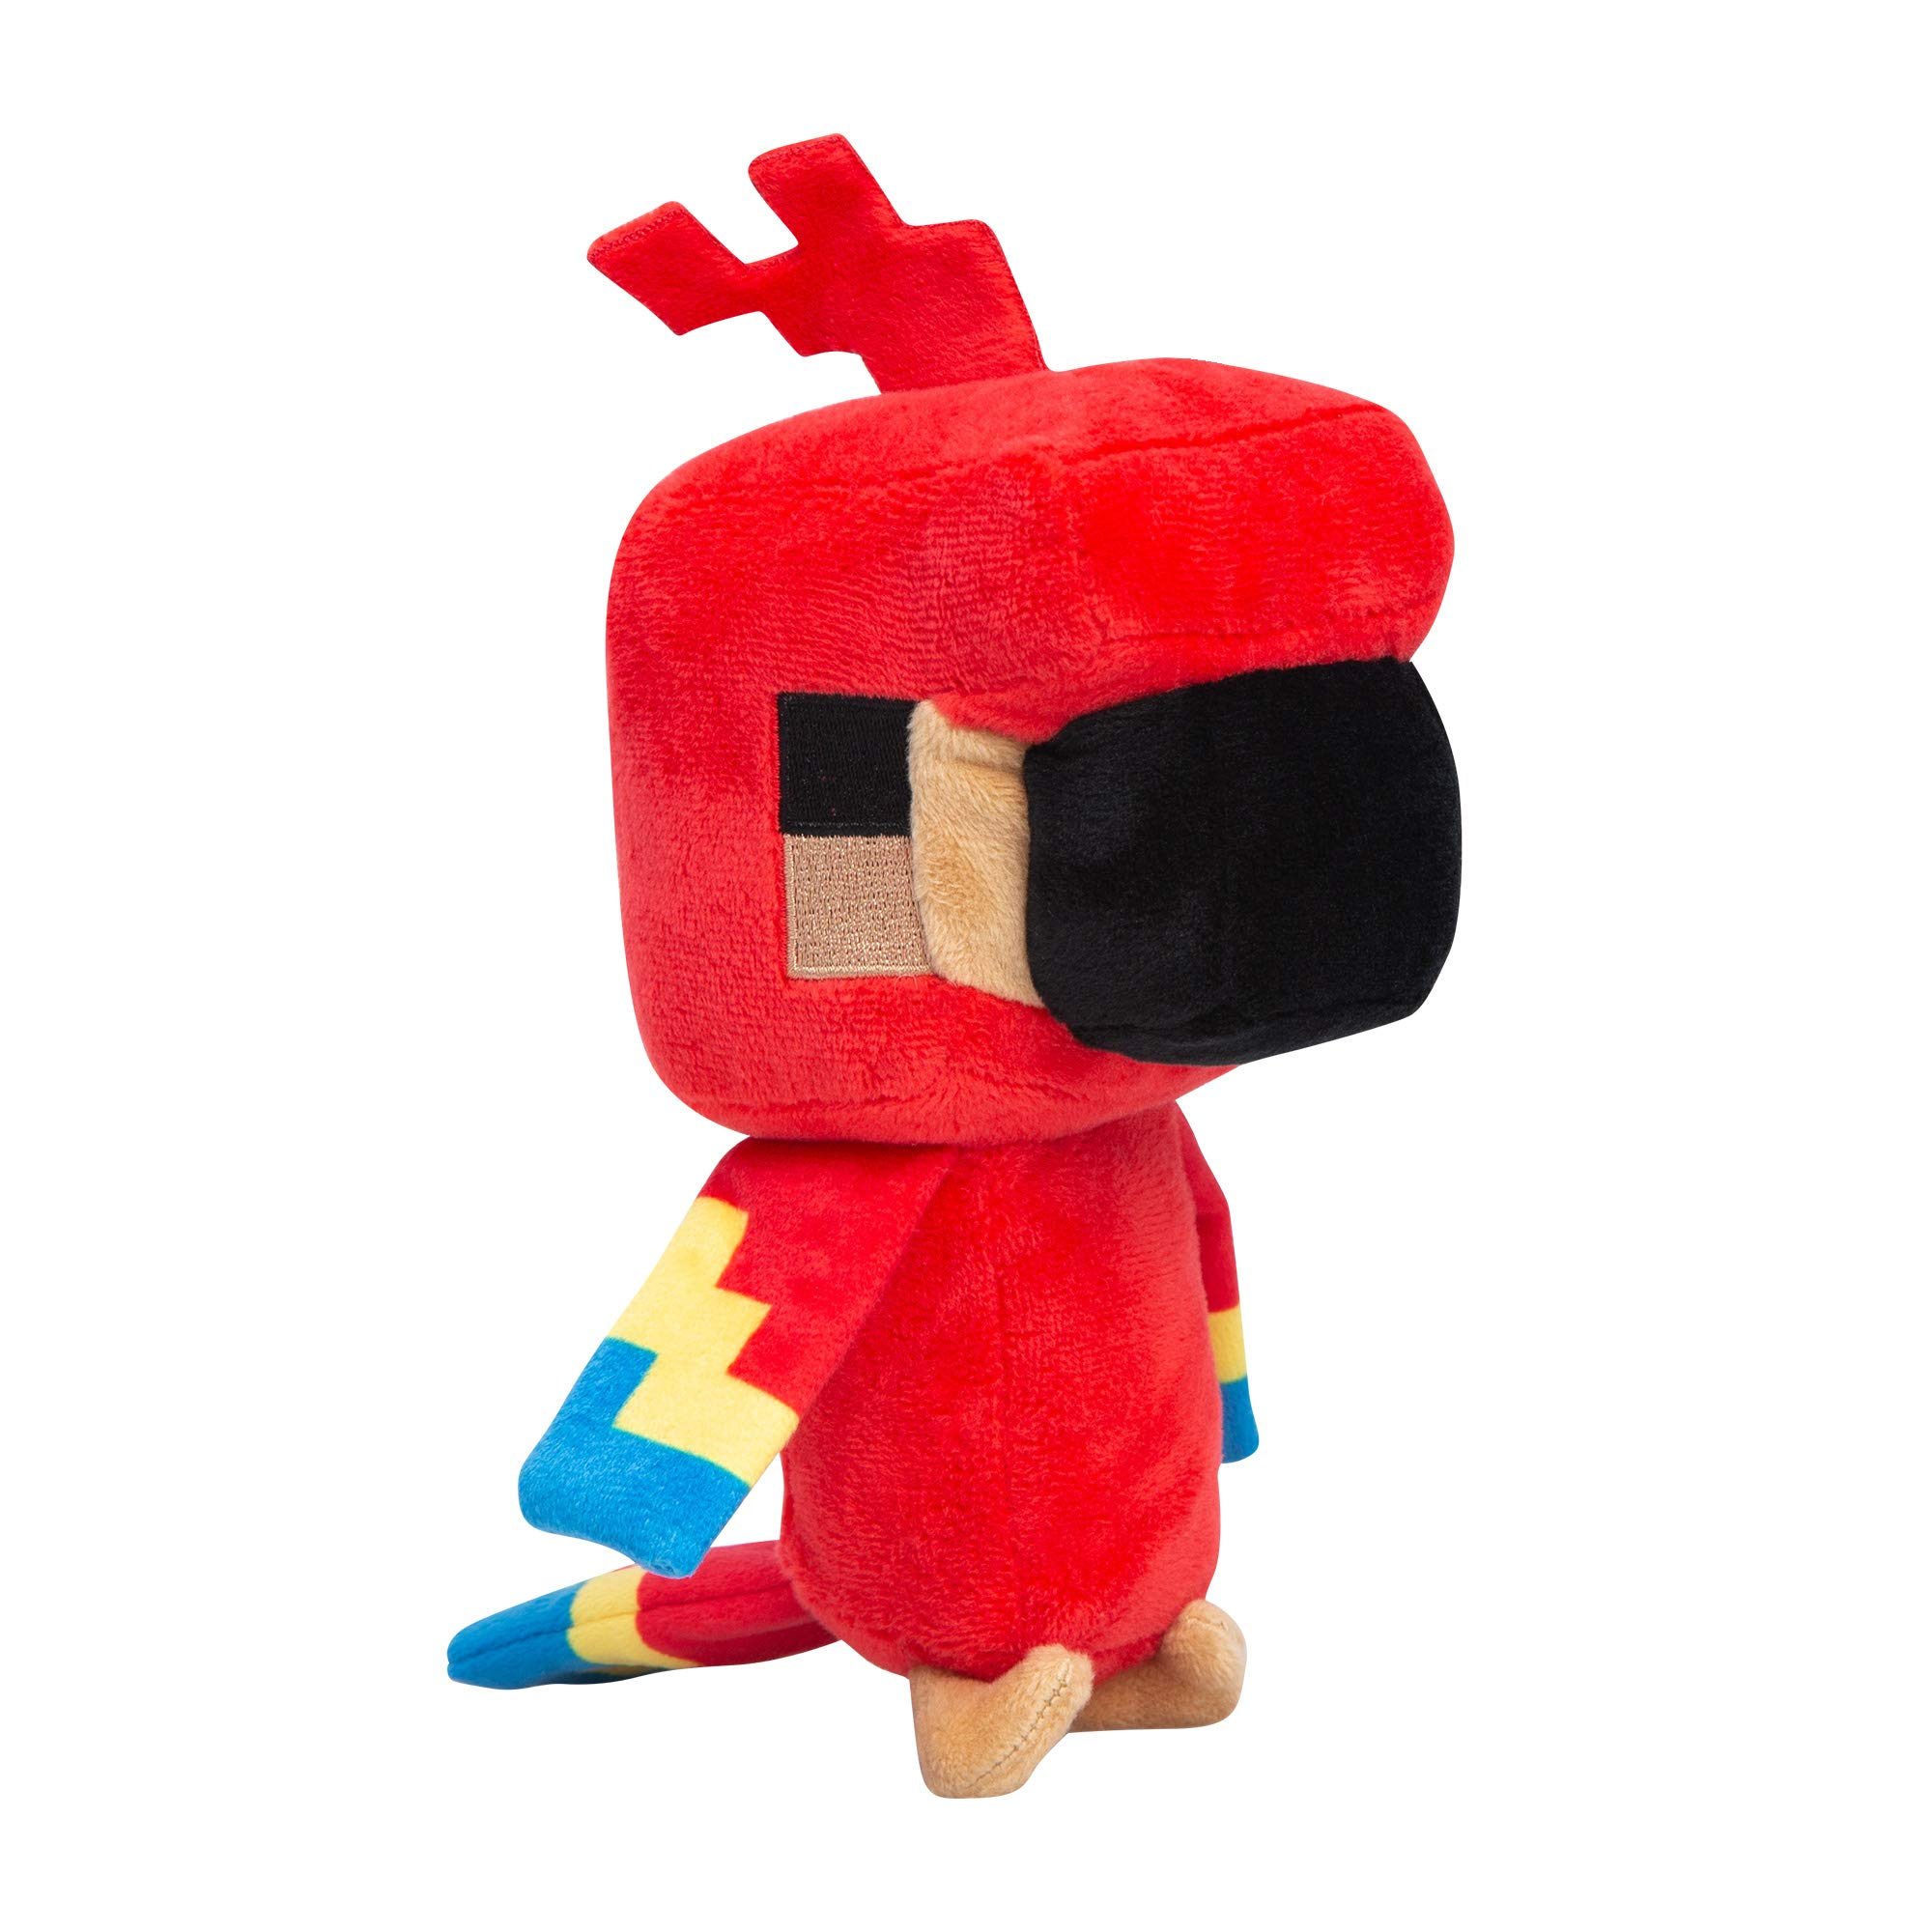 "JINX Minecraft Happy Explorer Parrot Plush Stuffed Toy, Red, 7"" Tall"